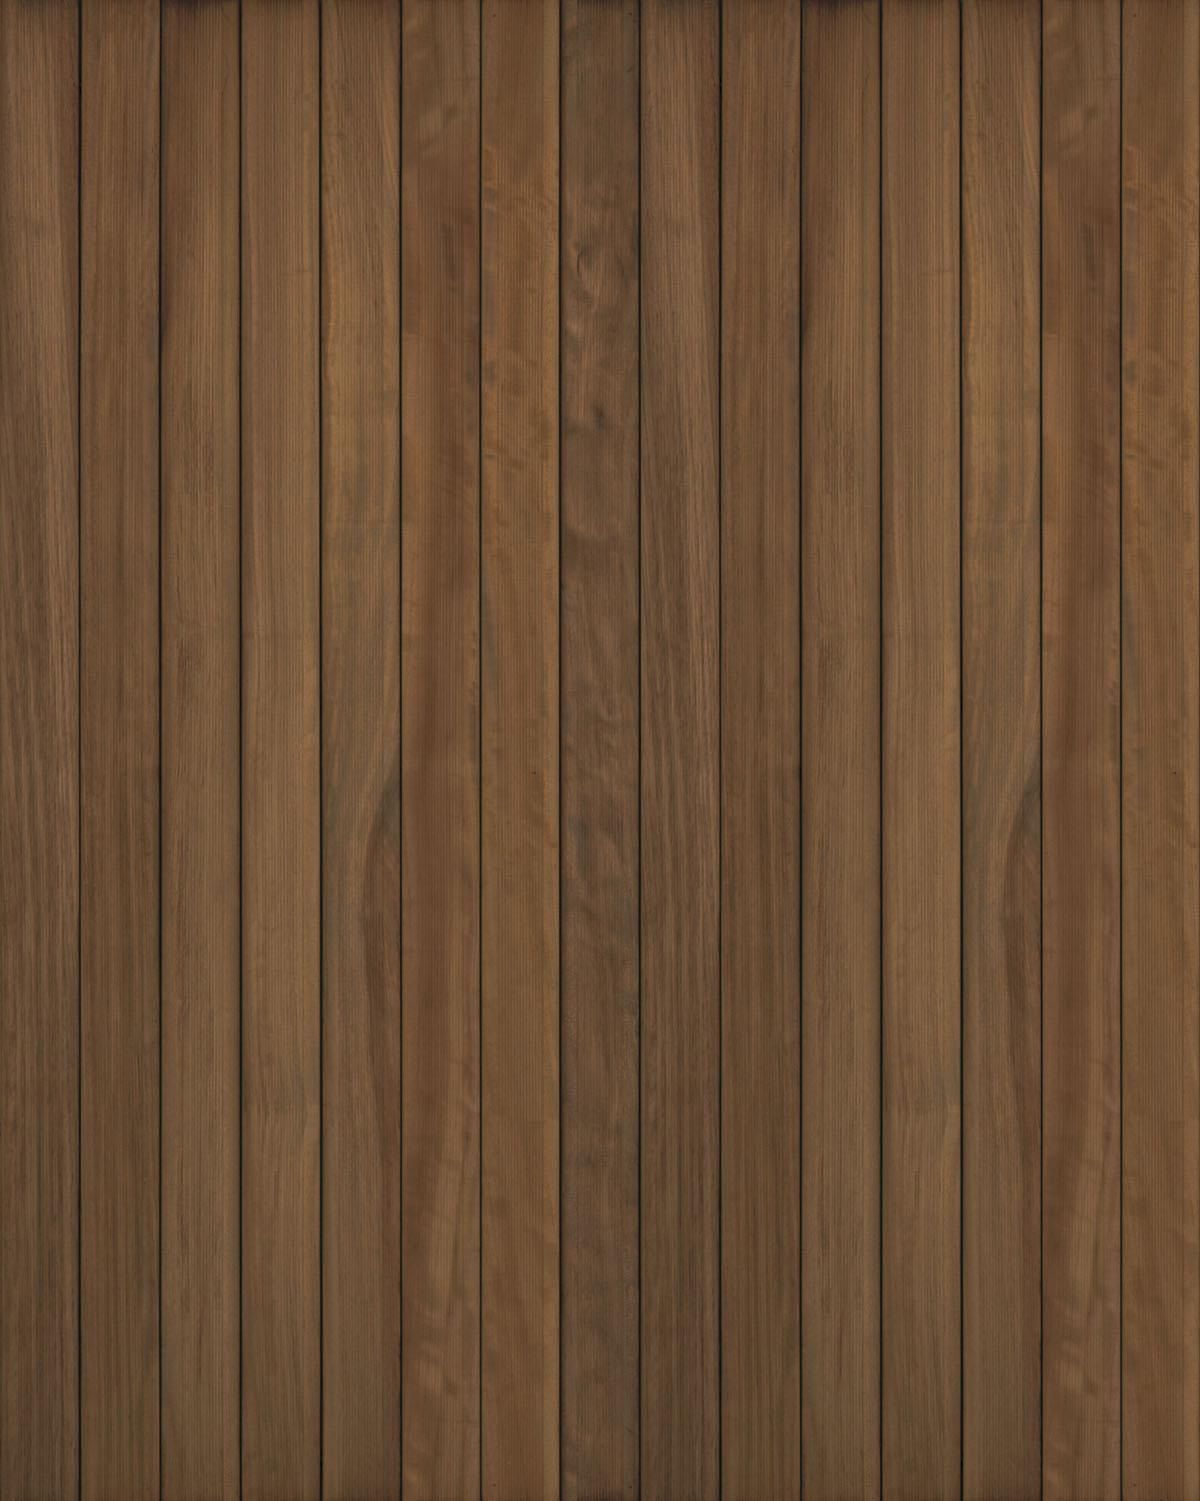 To Access More Of These Seamless Wood Texture Visit Sketchup Texture Họa Tiết Kiến Truc Gạch